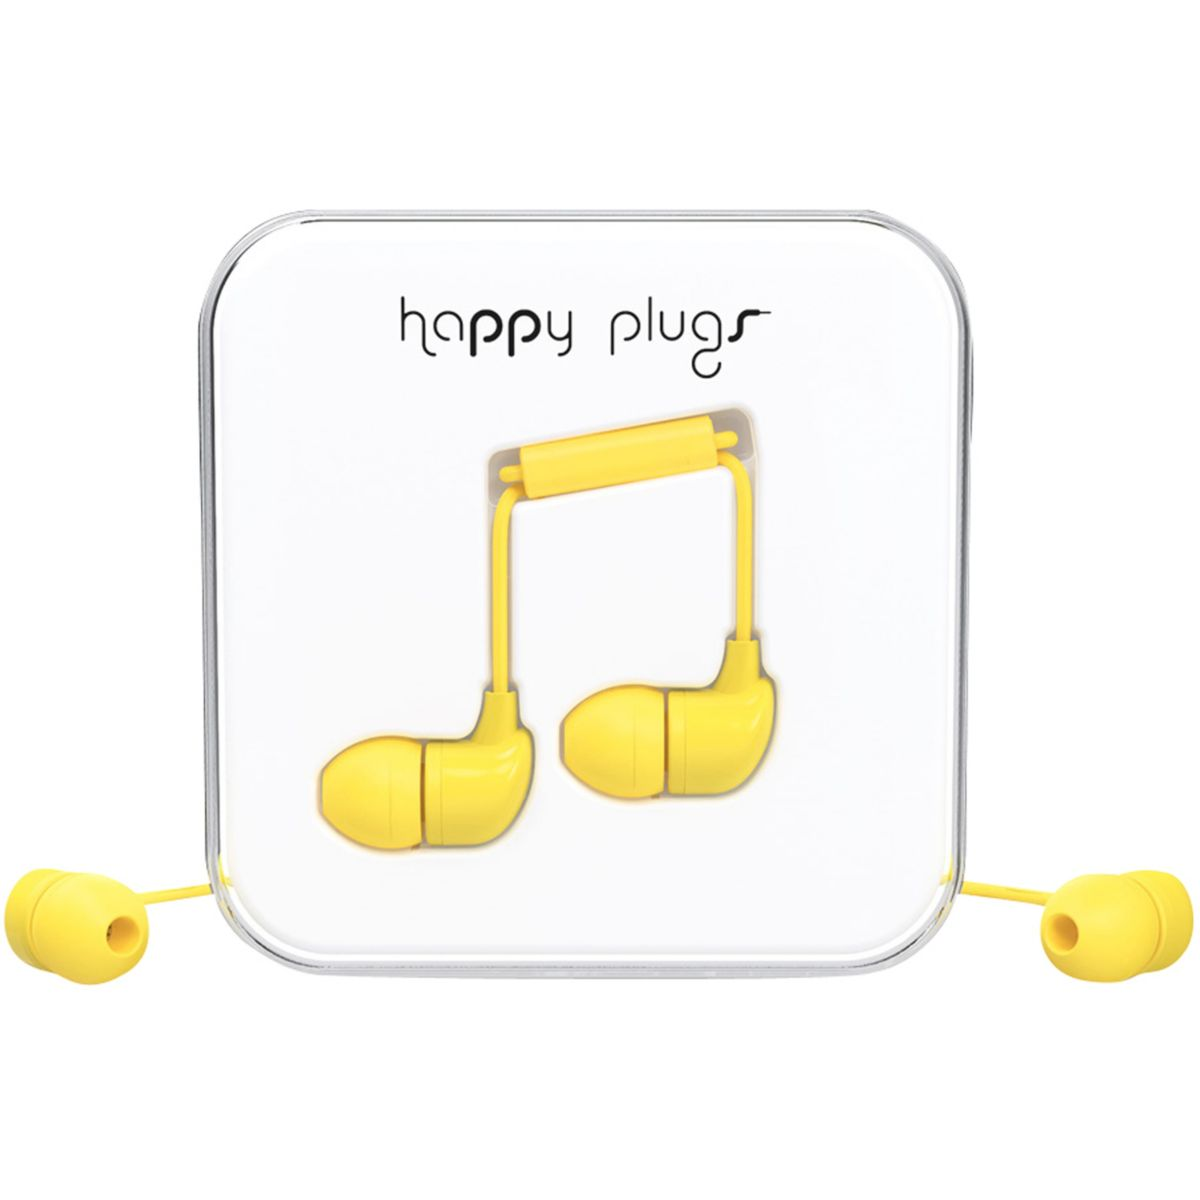 Ecouteurs avec micro happy plugs in-ear yellow